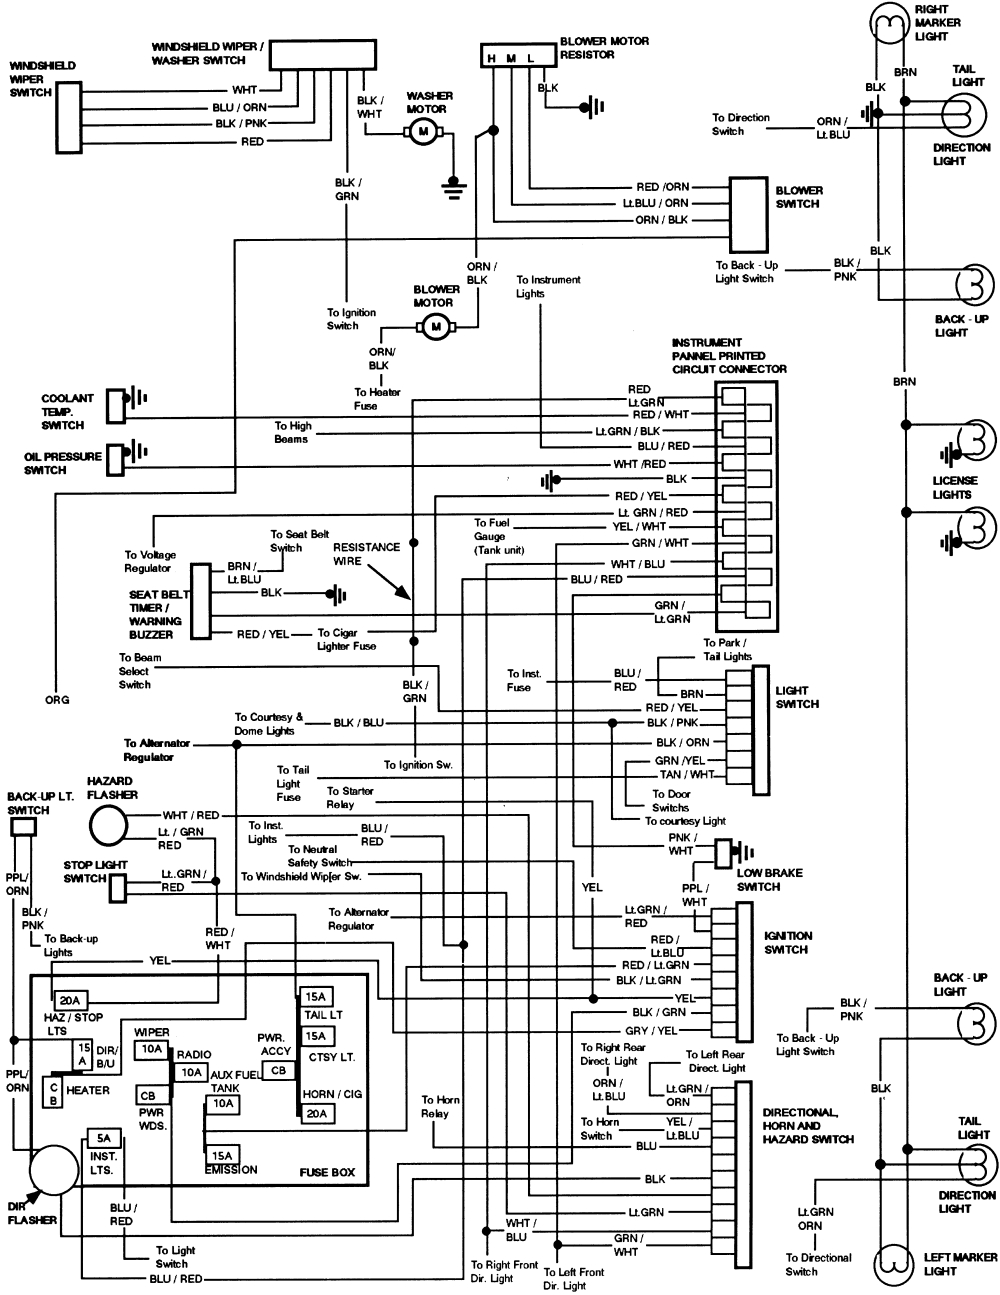 1984 Ford Bronco Instrument Panel Wiring Diagram | All